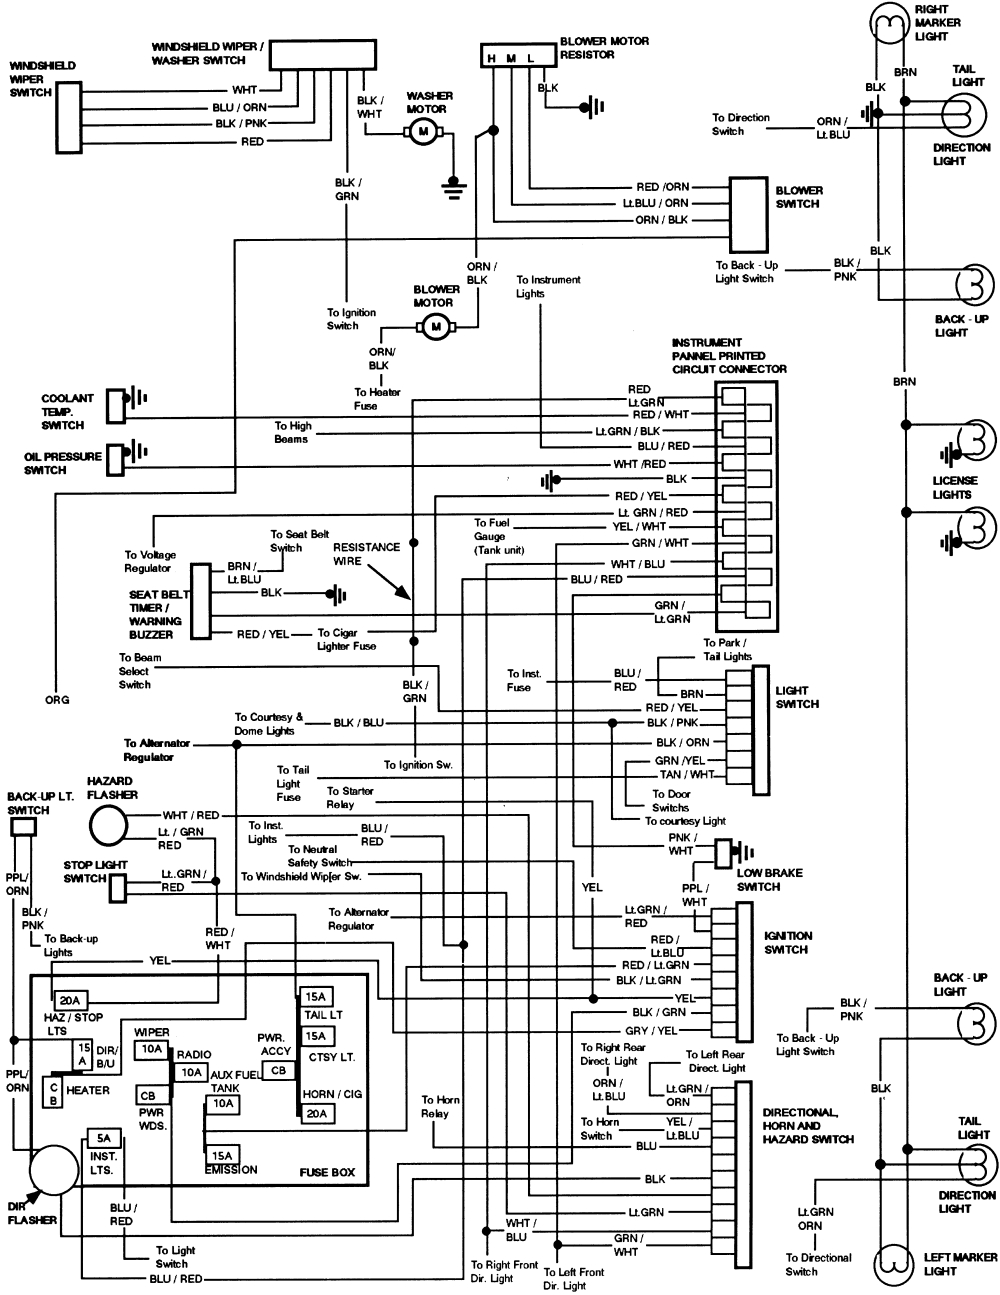 1984 Ford Bronco Instrument Panel Wiring Diagram | All